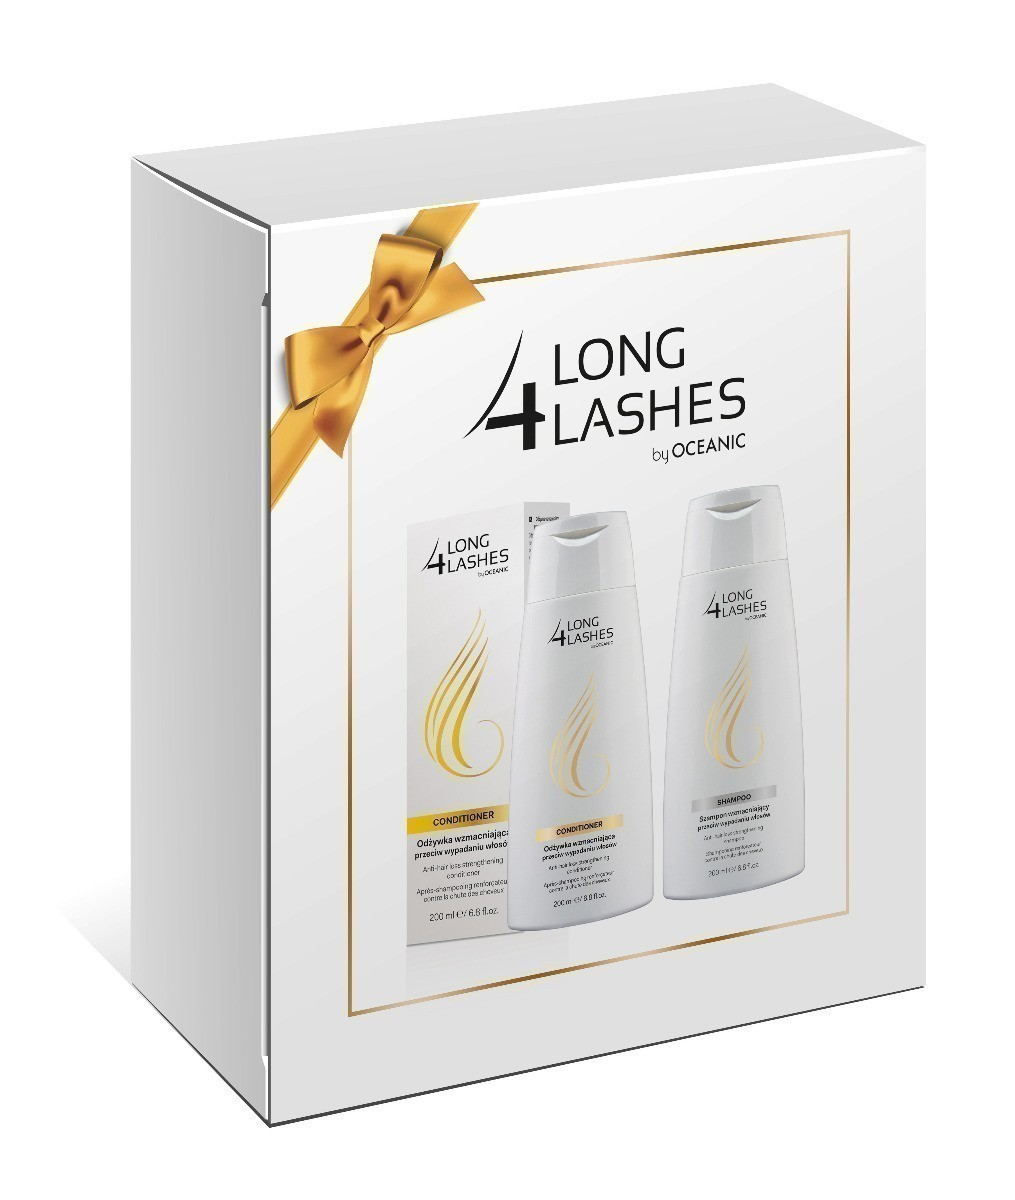 Long 4 Lashes XMASS